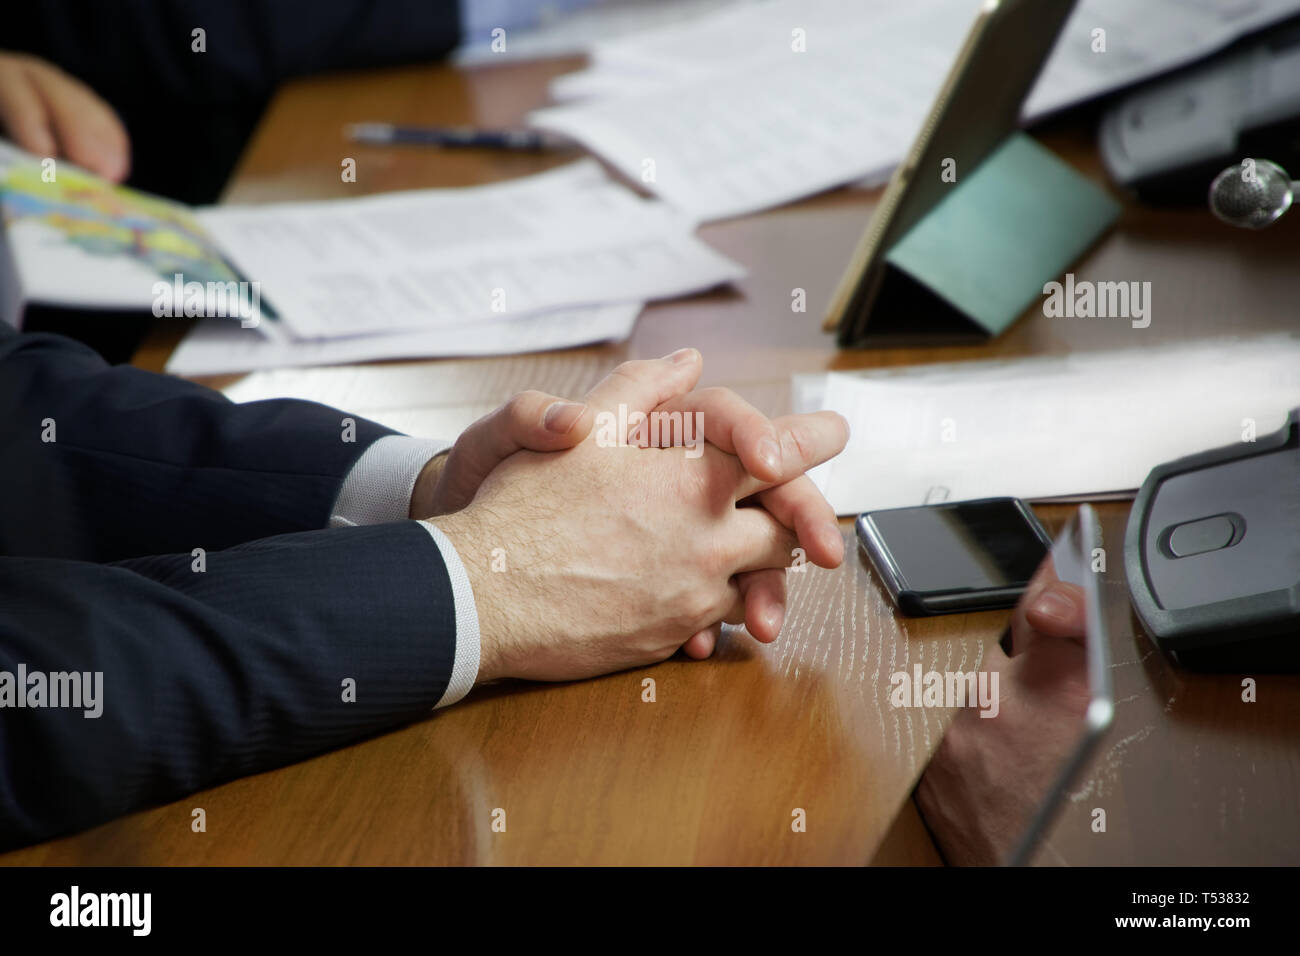 Hands of a person sitting at a table during a business meeting. Job responsibilities - Stock Image